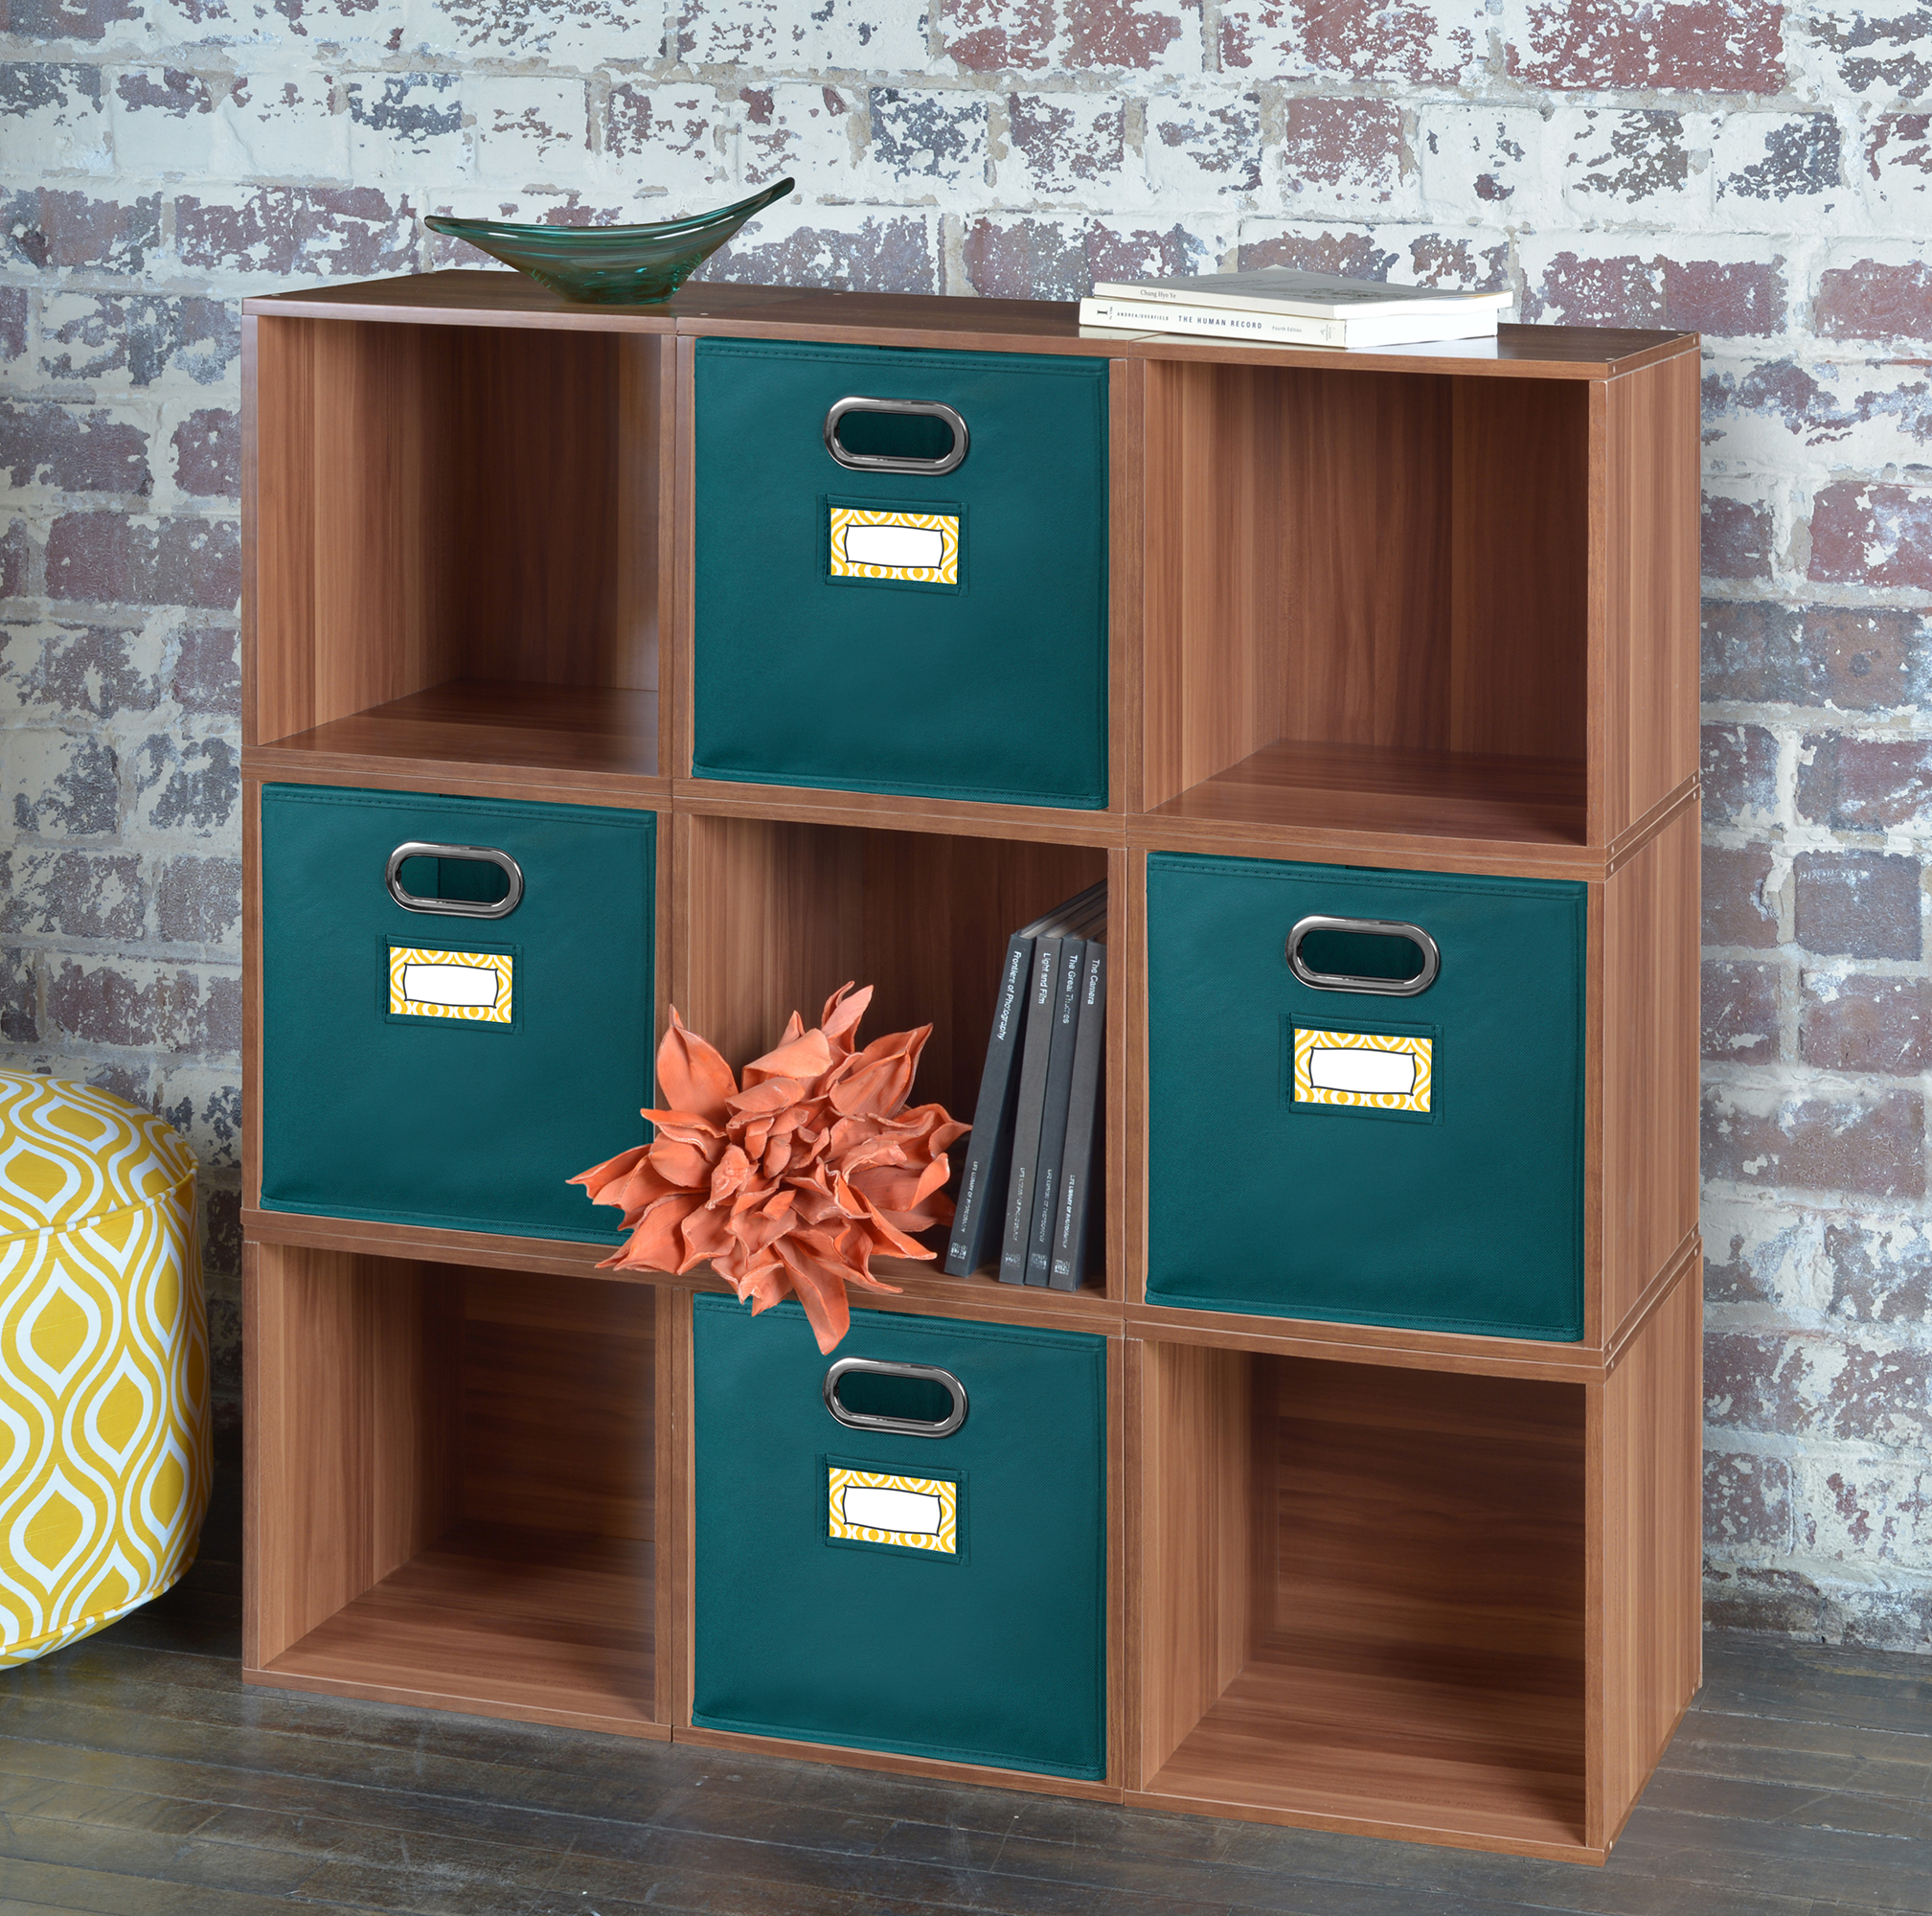 Niche Cubo Set of 4 Foldable Fabric Storage Bins- Teal by Regency